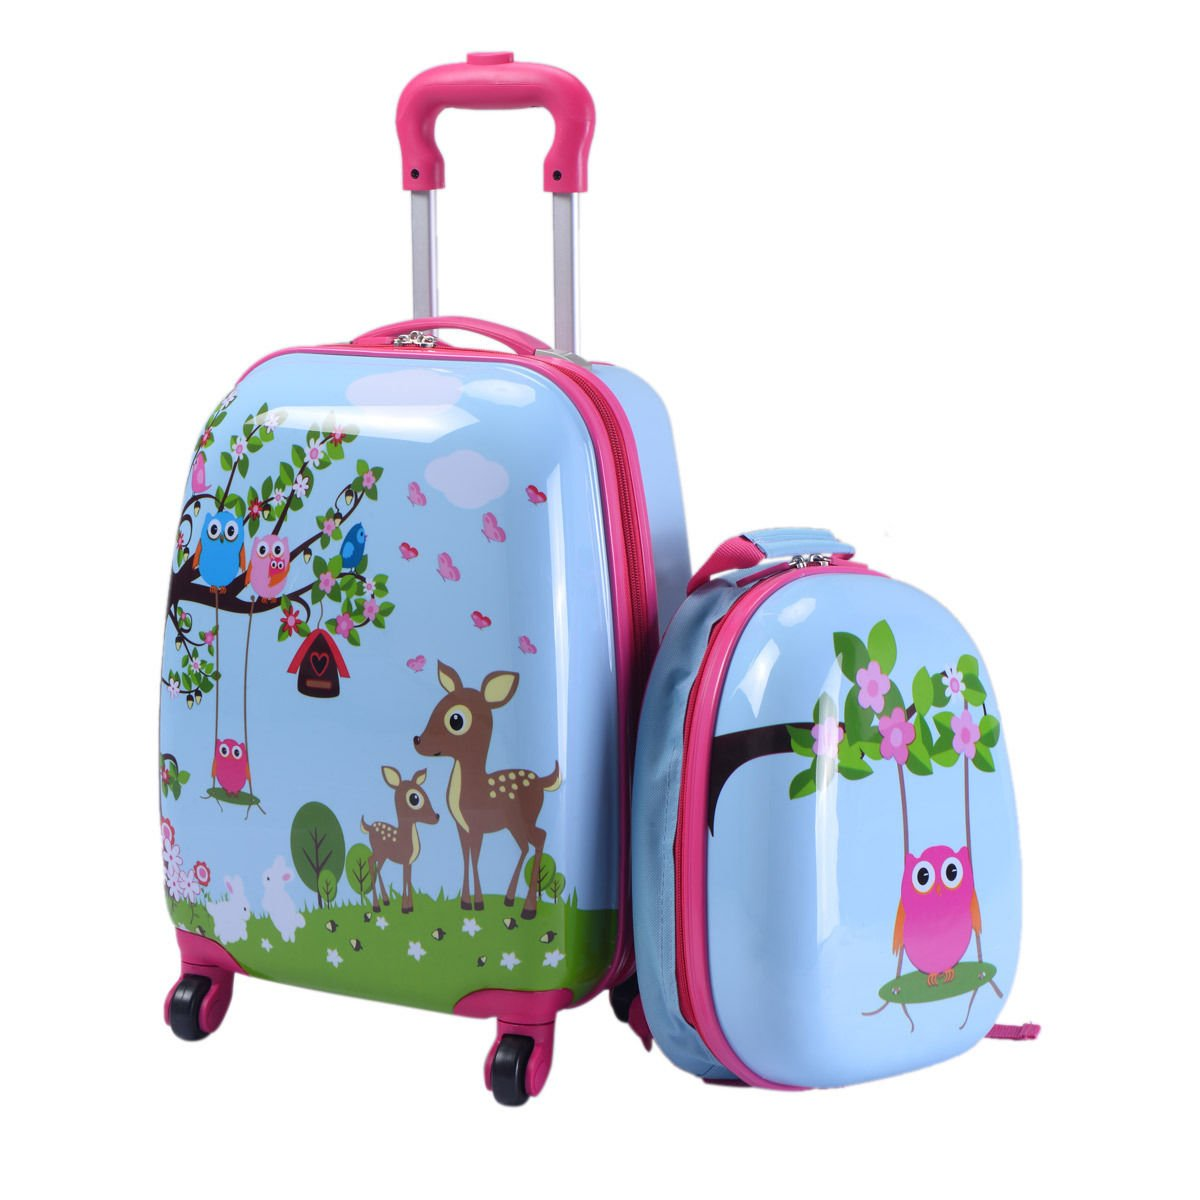 Polycarbonate+ABS+Nylon Kid Children Luggage With Ebook